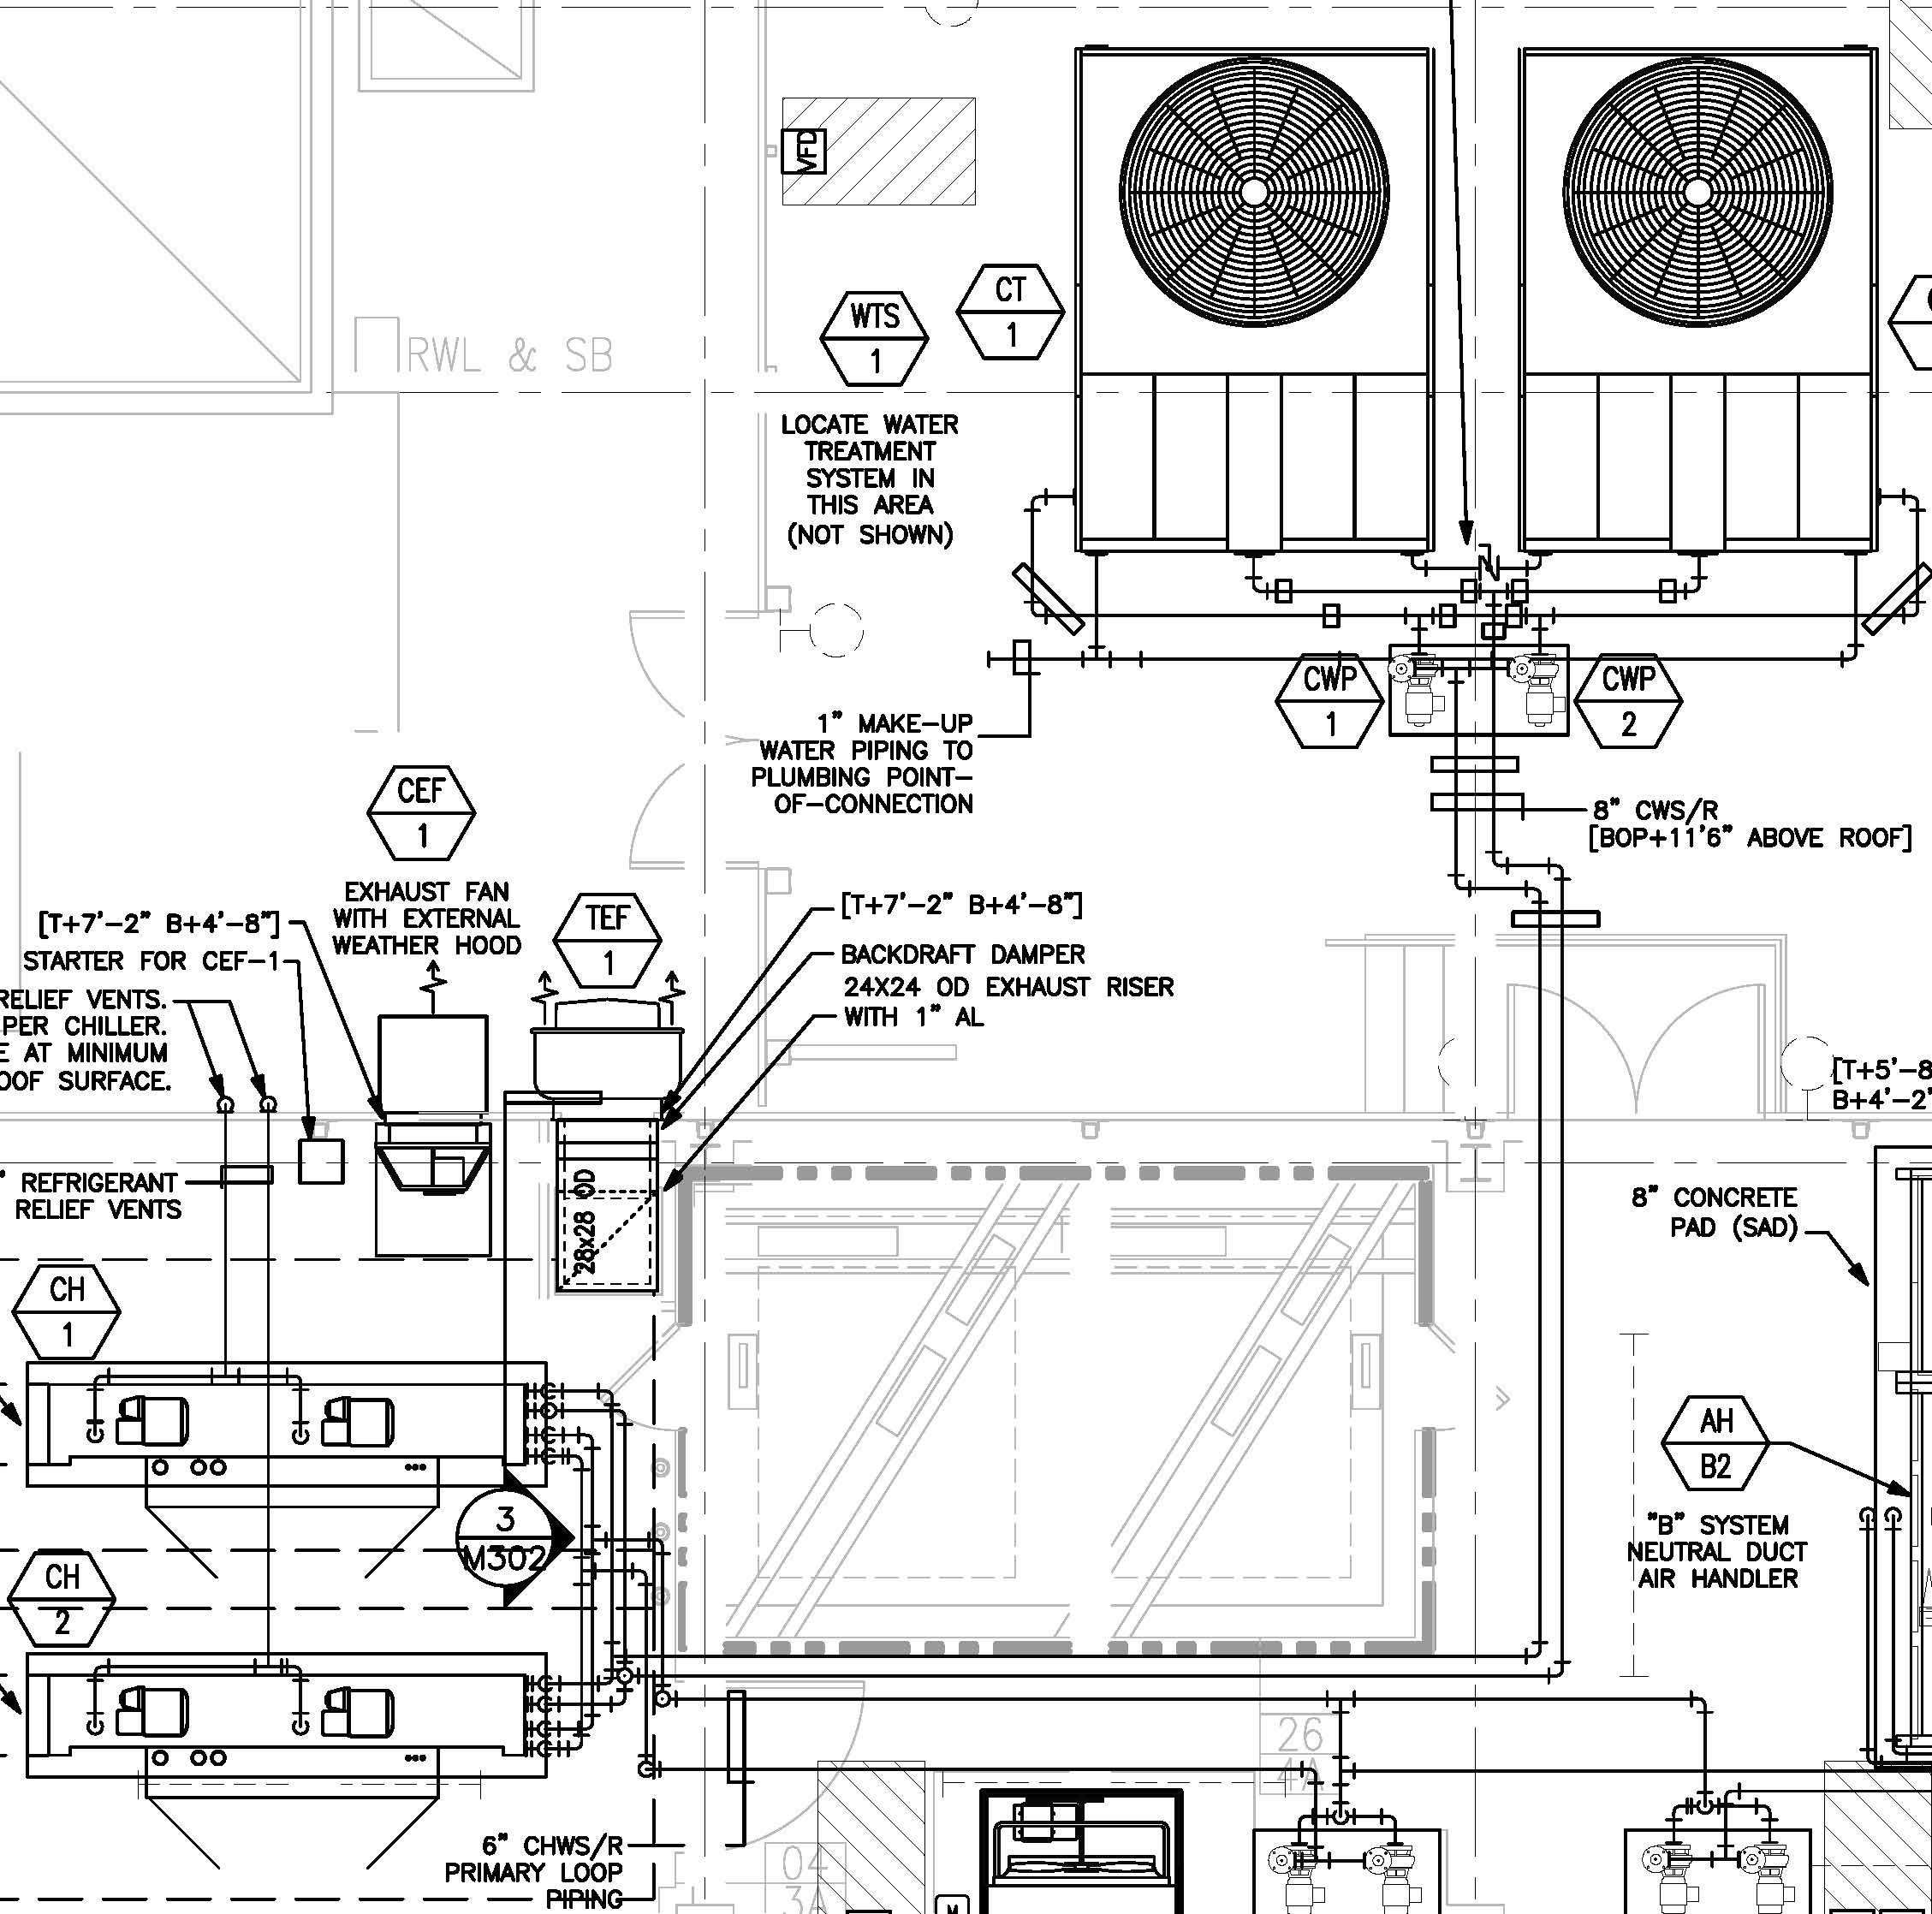 Truck Air System Diagram Truck Air System Diagram Well Pump House